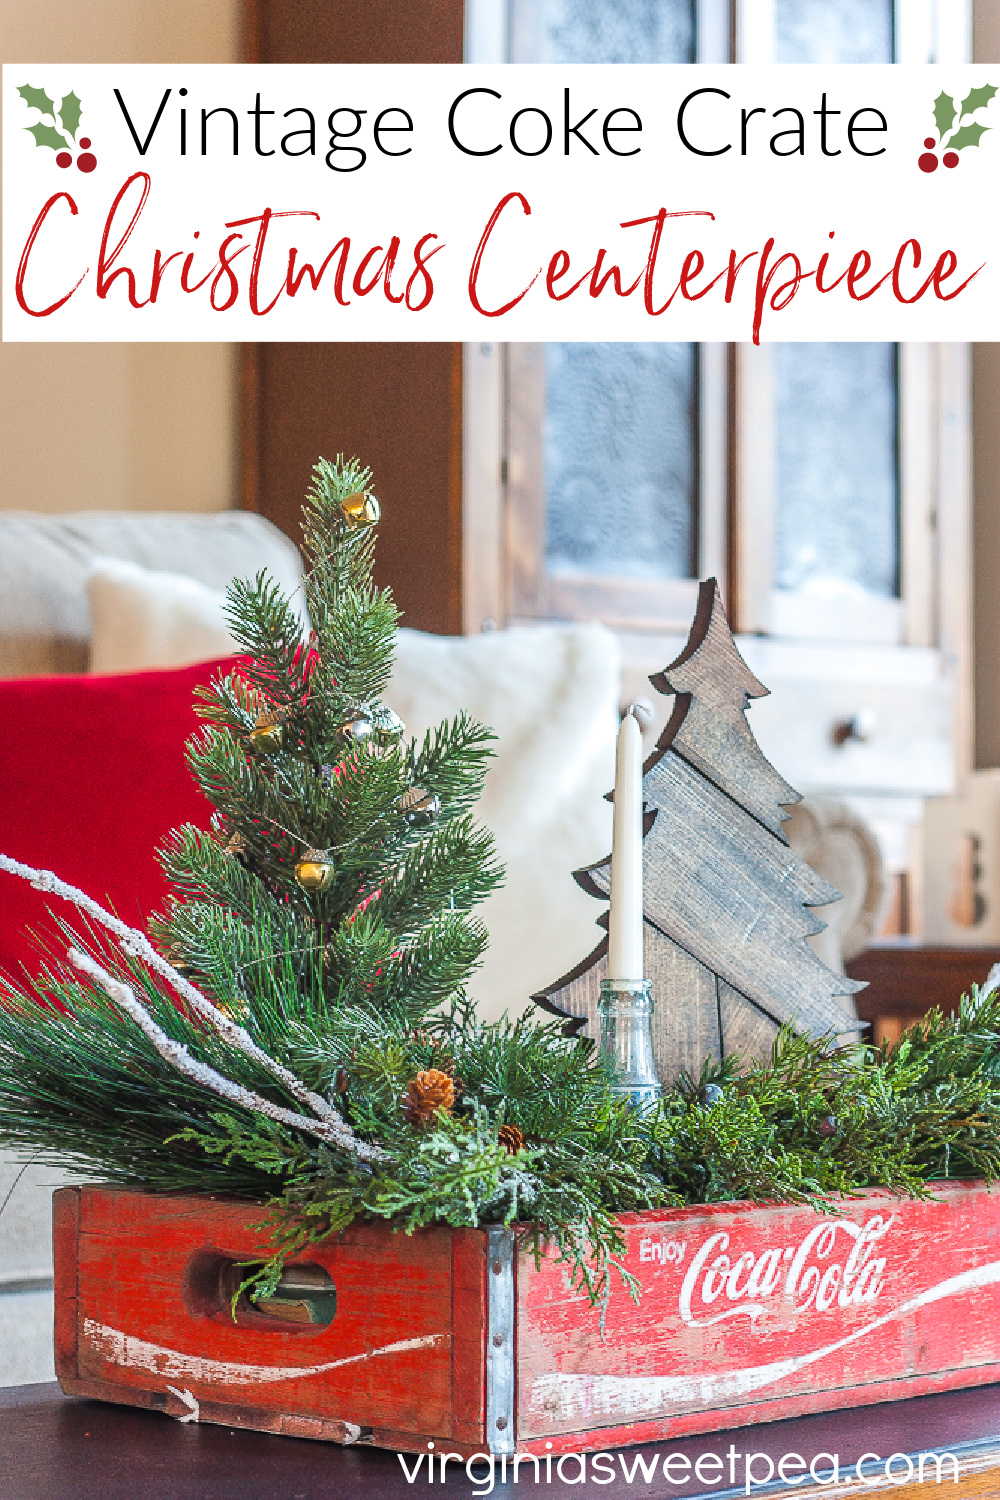 Vintage Coke Crate Christmas Centerpiece - Create a Christmas centerpiece using a vintage Coke crate and see a dozen more ideas for using crates for a Christmas centerpiece. via @spaula